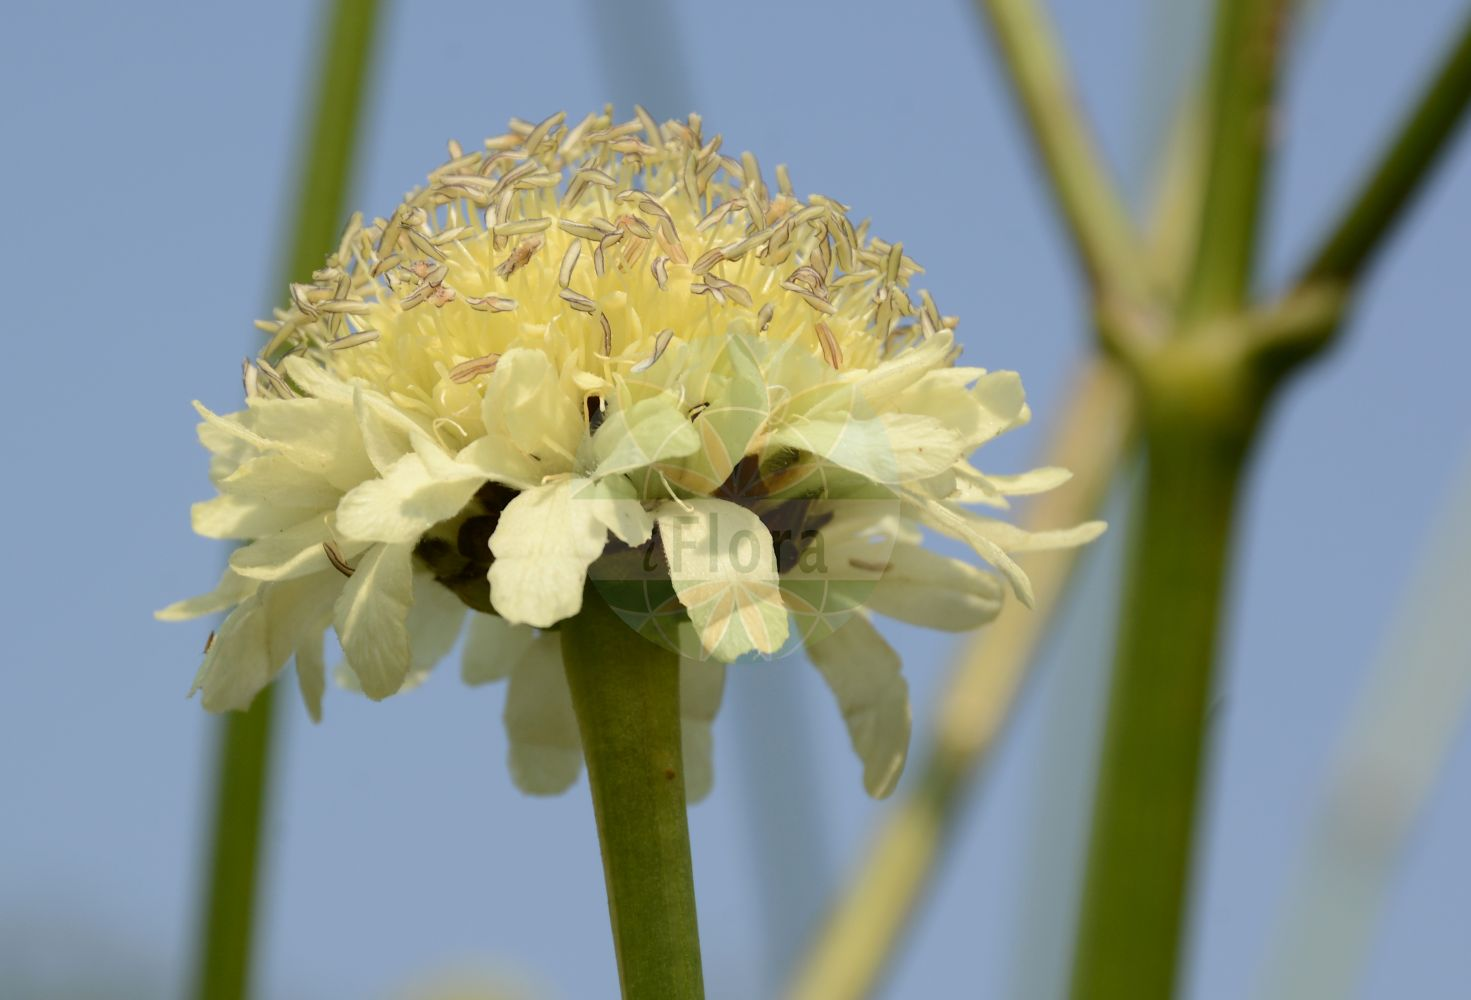 Foto von Scabiosa owerinii. Das Bild zeigt Bluete. Das Foto wurde in Bonn, Nordrhein-Westfalen, Deutschland aufgenommen. ---- Photo of Scabiosa owerinii.The image is showing flower.The picture was taken in Bonn, North Rhine-Westphalia, Germany.(Scabiosa owerinii,Scabiosa,Skabiose,Scabious,Caprifoliaceae,Geissblattgewaechse,Honeysuckle family,Bluete,flower)